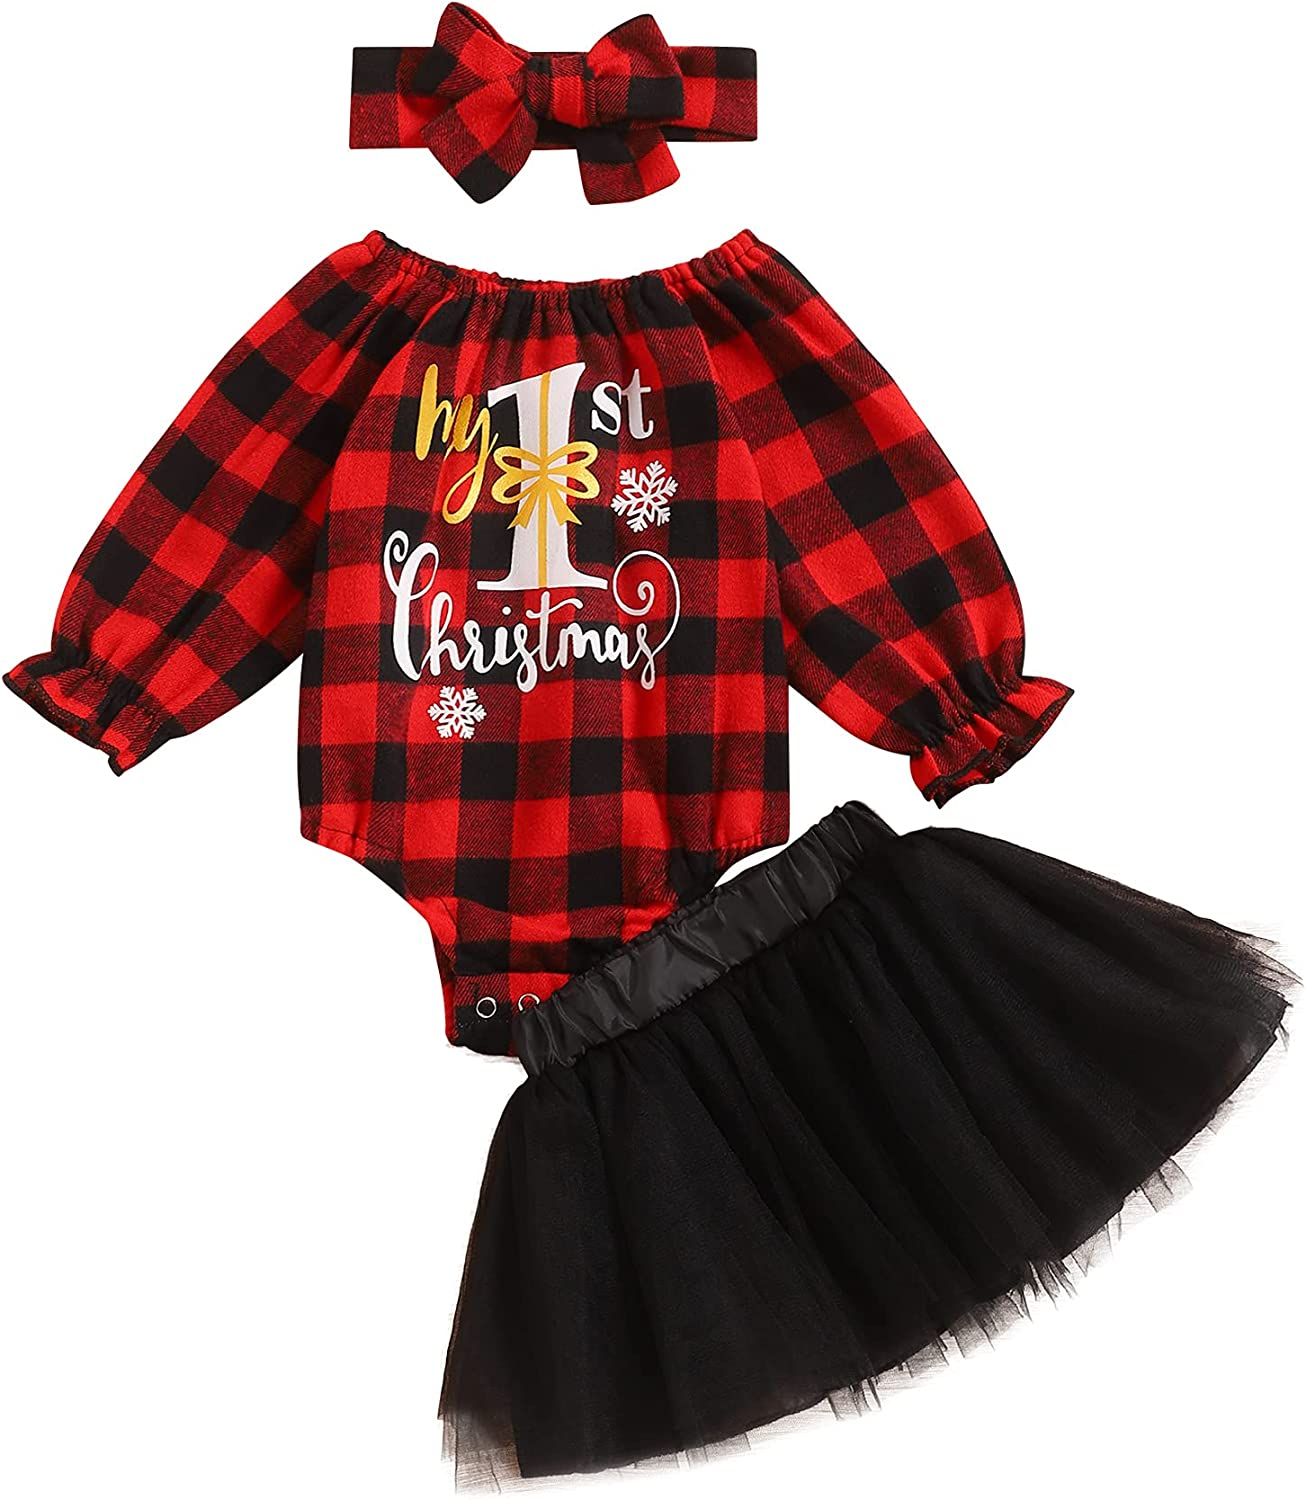 bilison Infant Baby Girl Christmas Outfit My First Christmas Plaid Romper Top Tutu Skirt with Headband Xmas 3Pcs Clothes Set